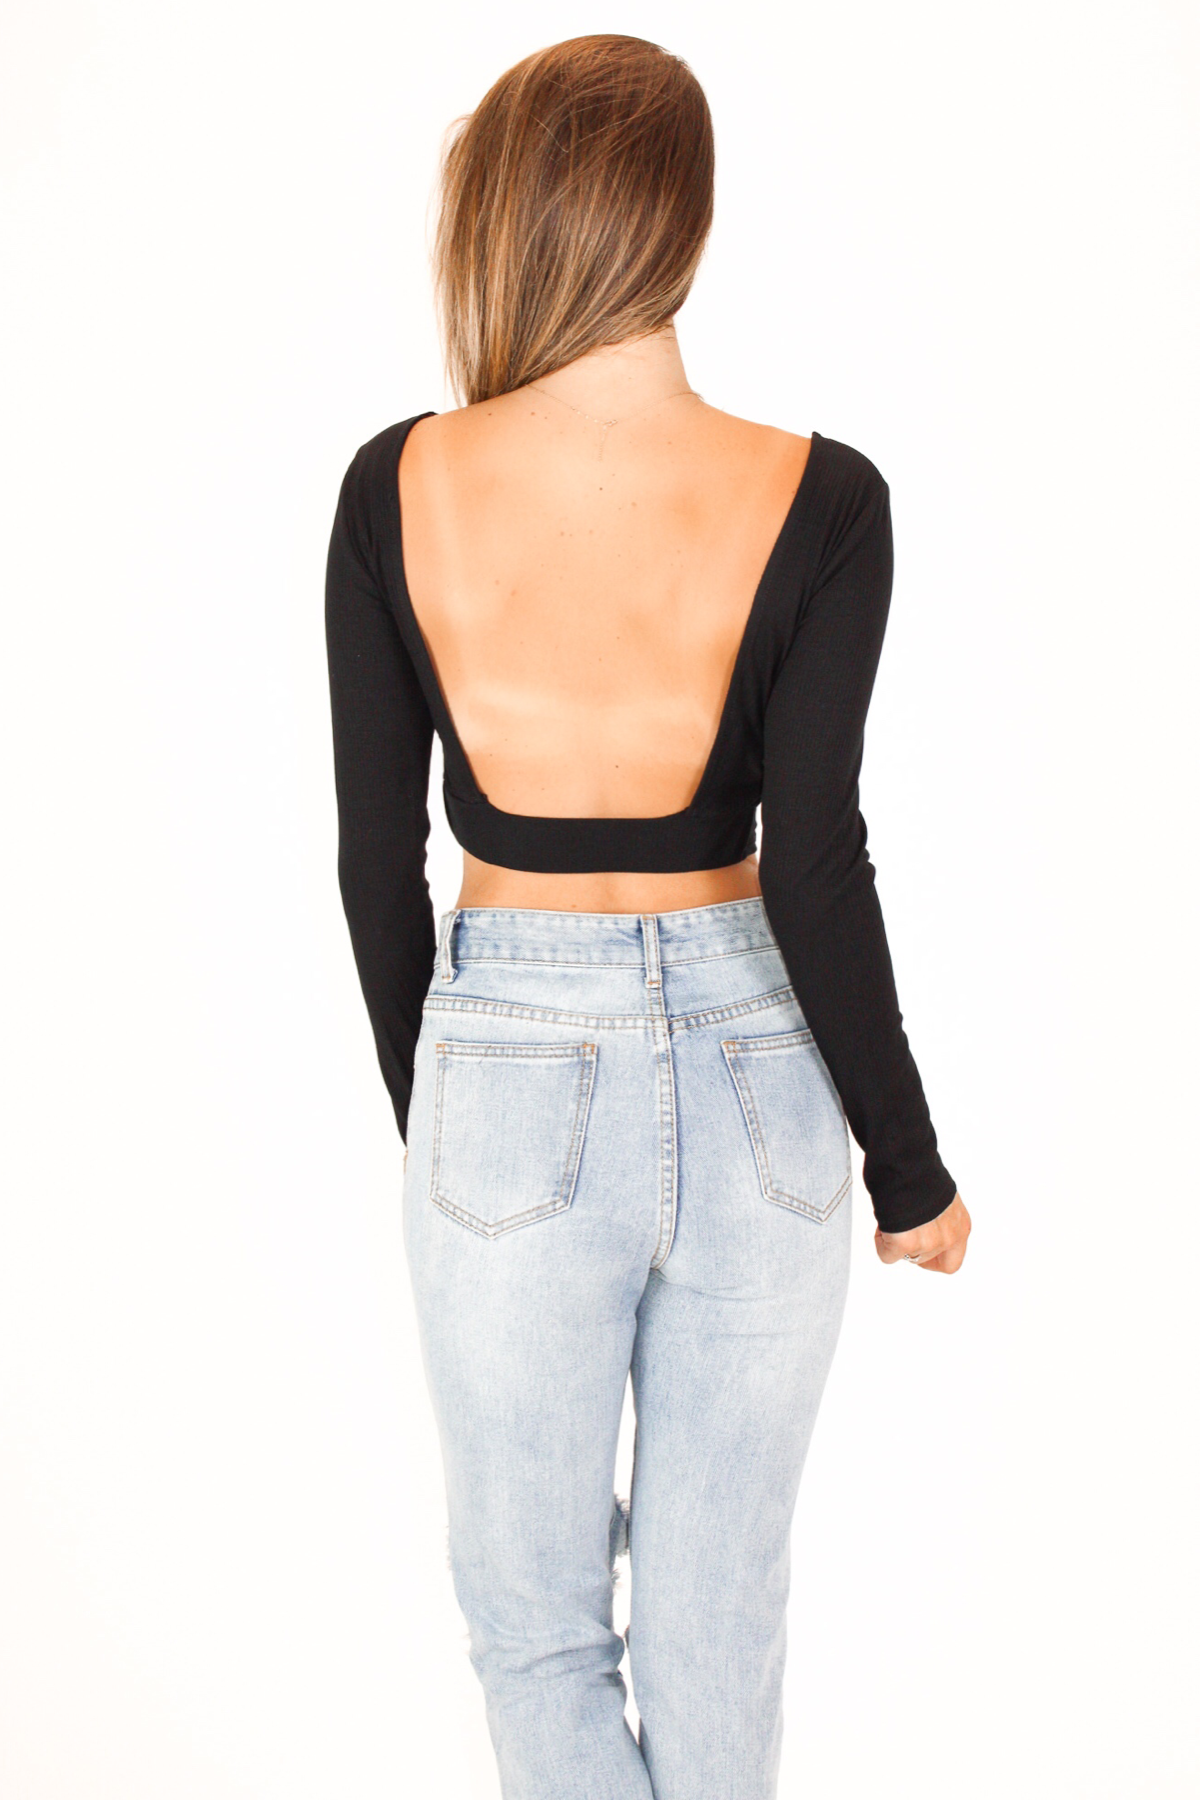 OPEN BACK LONG SLEEVE CROP IN BLACK / FINAL CLEARANCE